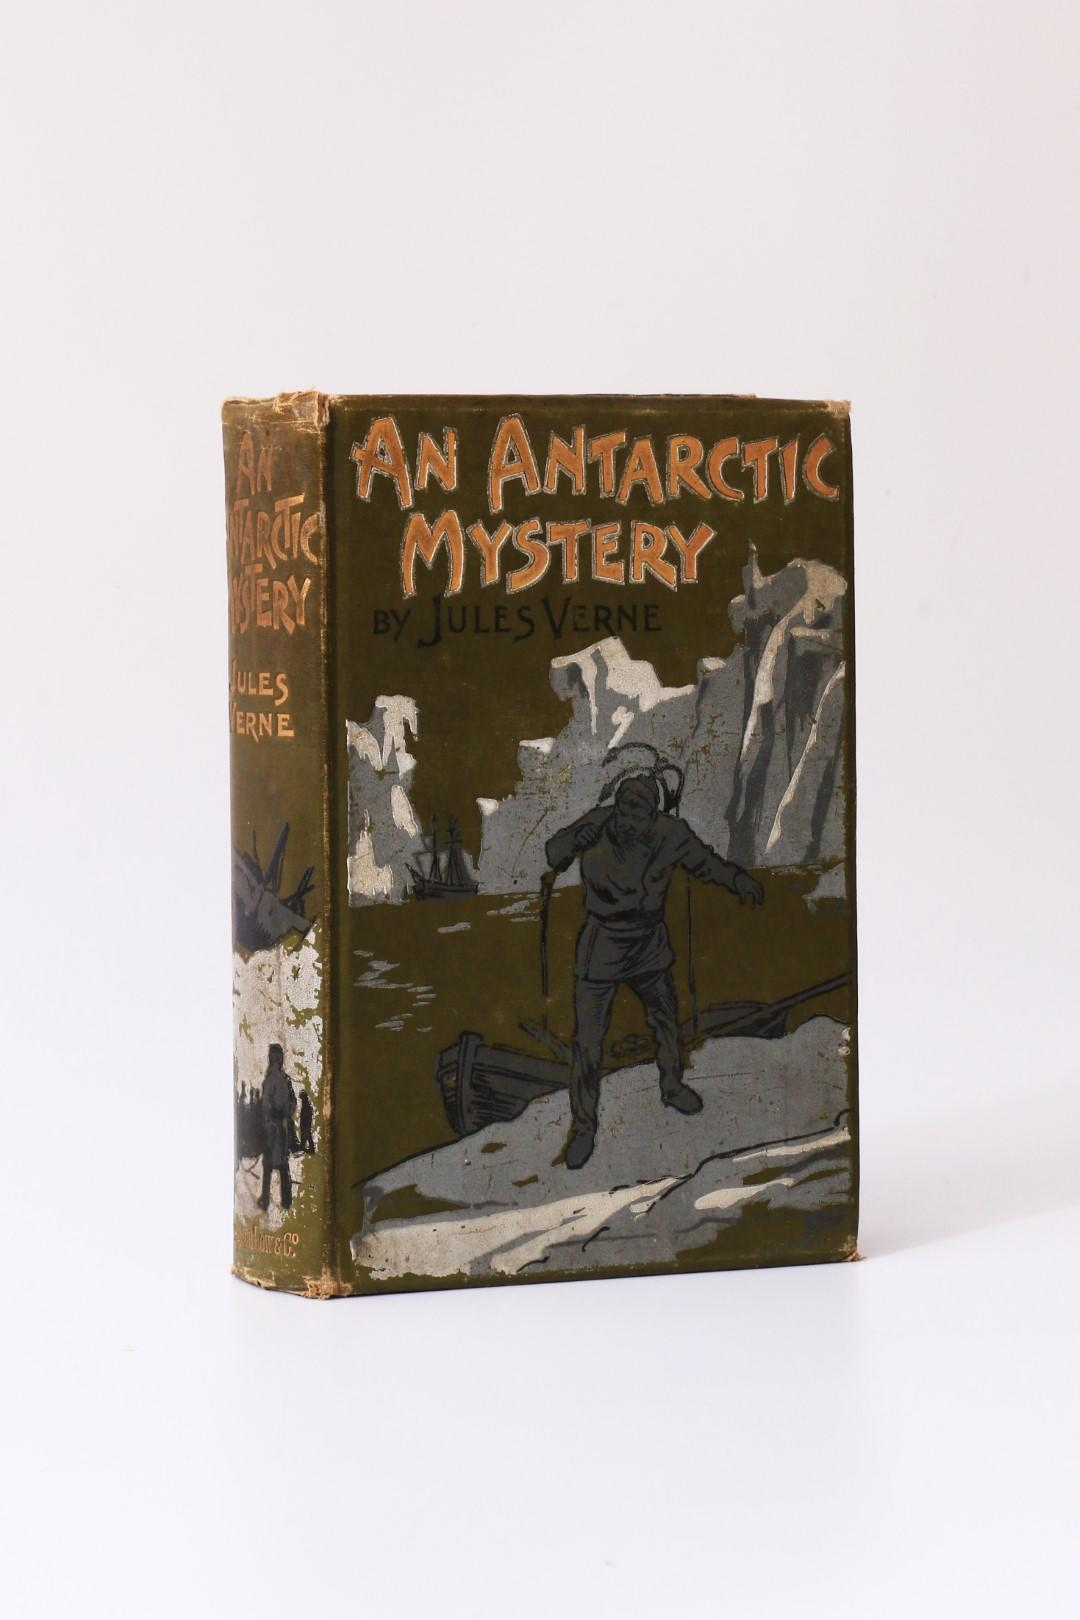 Jules Verne - An Antarctic Mystery - Sampson Low, Marston & Co., 1898, First Edition.